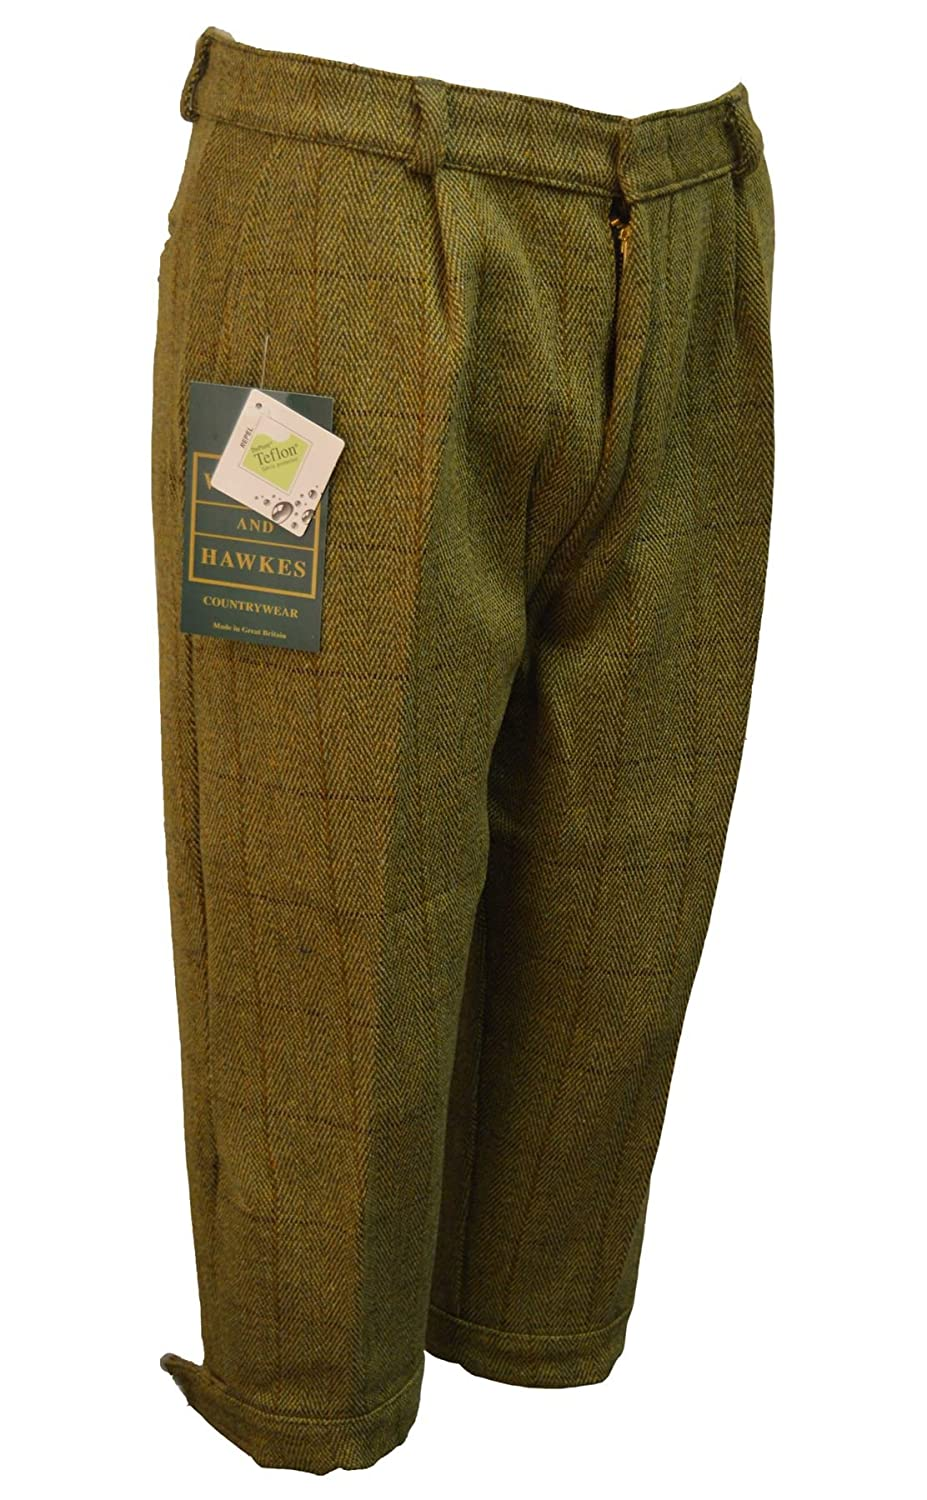 Rosie the Riveter Costume & Outfit Ideas Walker & Hawkes - Mens Derby Tweed Shooting Plus Fours LONG Breeks Trousers - Light Sage - 32-42 $76.99 AT vintagedancer.com